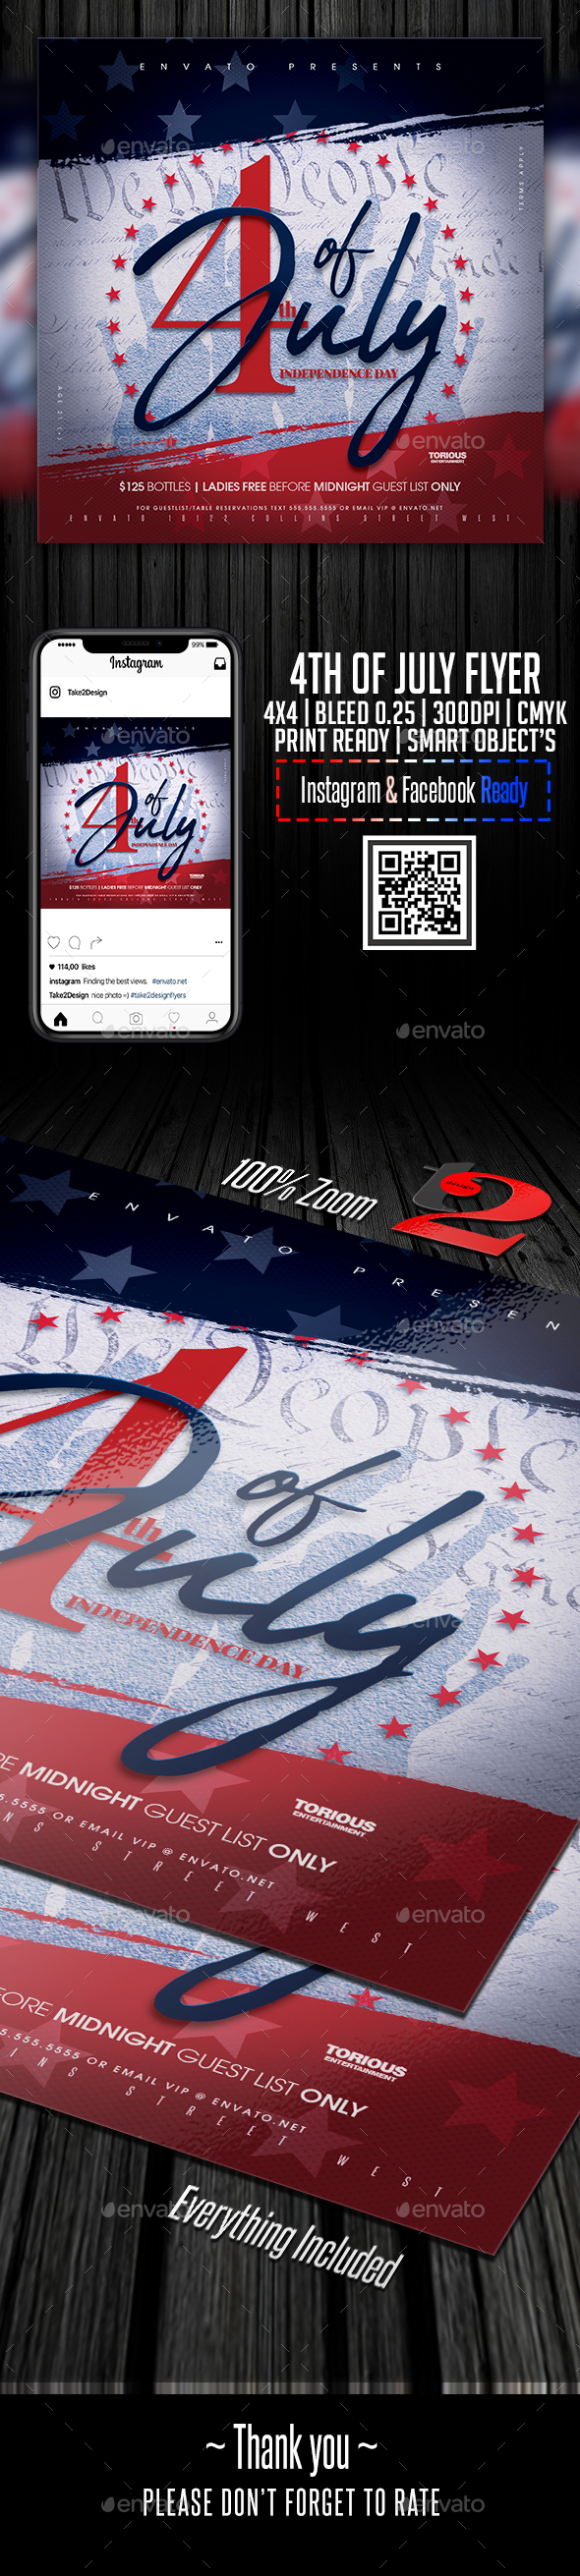 Flyers PSD – 4th of July Flyer Template – Download